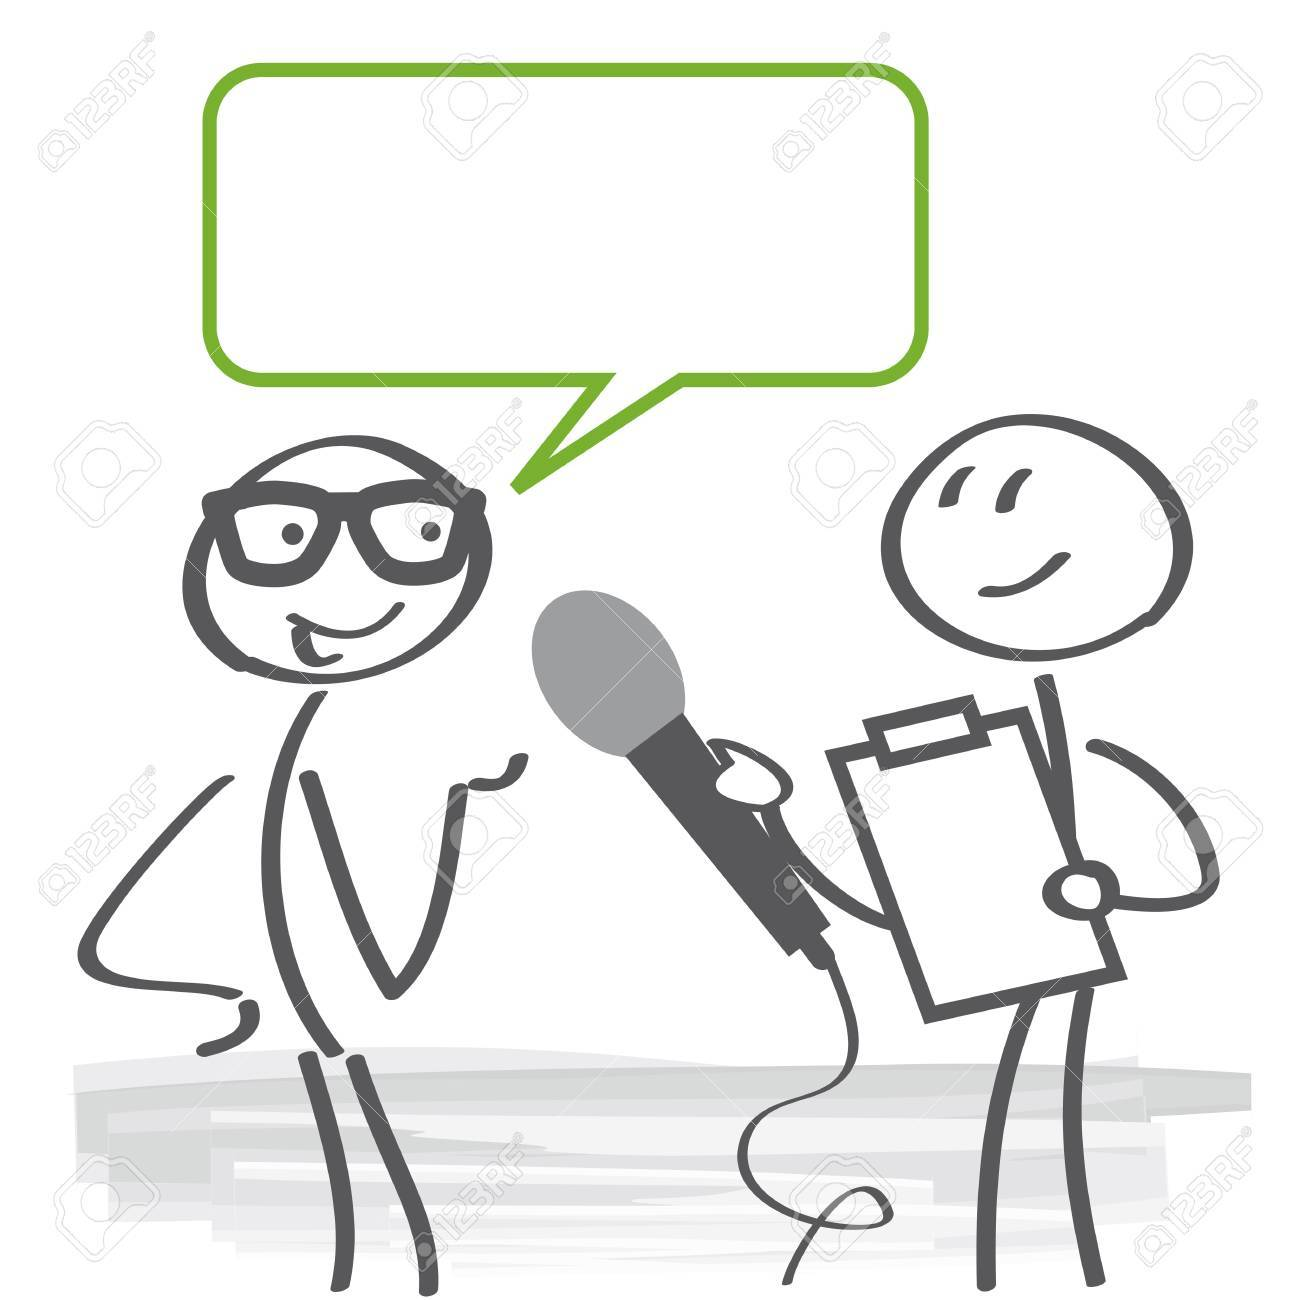 Reporter doing a survey with microphone and clipboard illustration. - 85022576